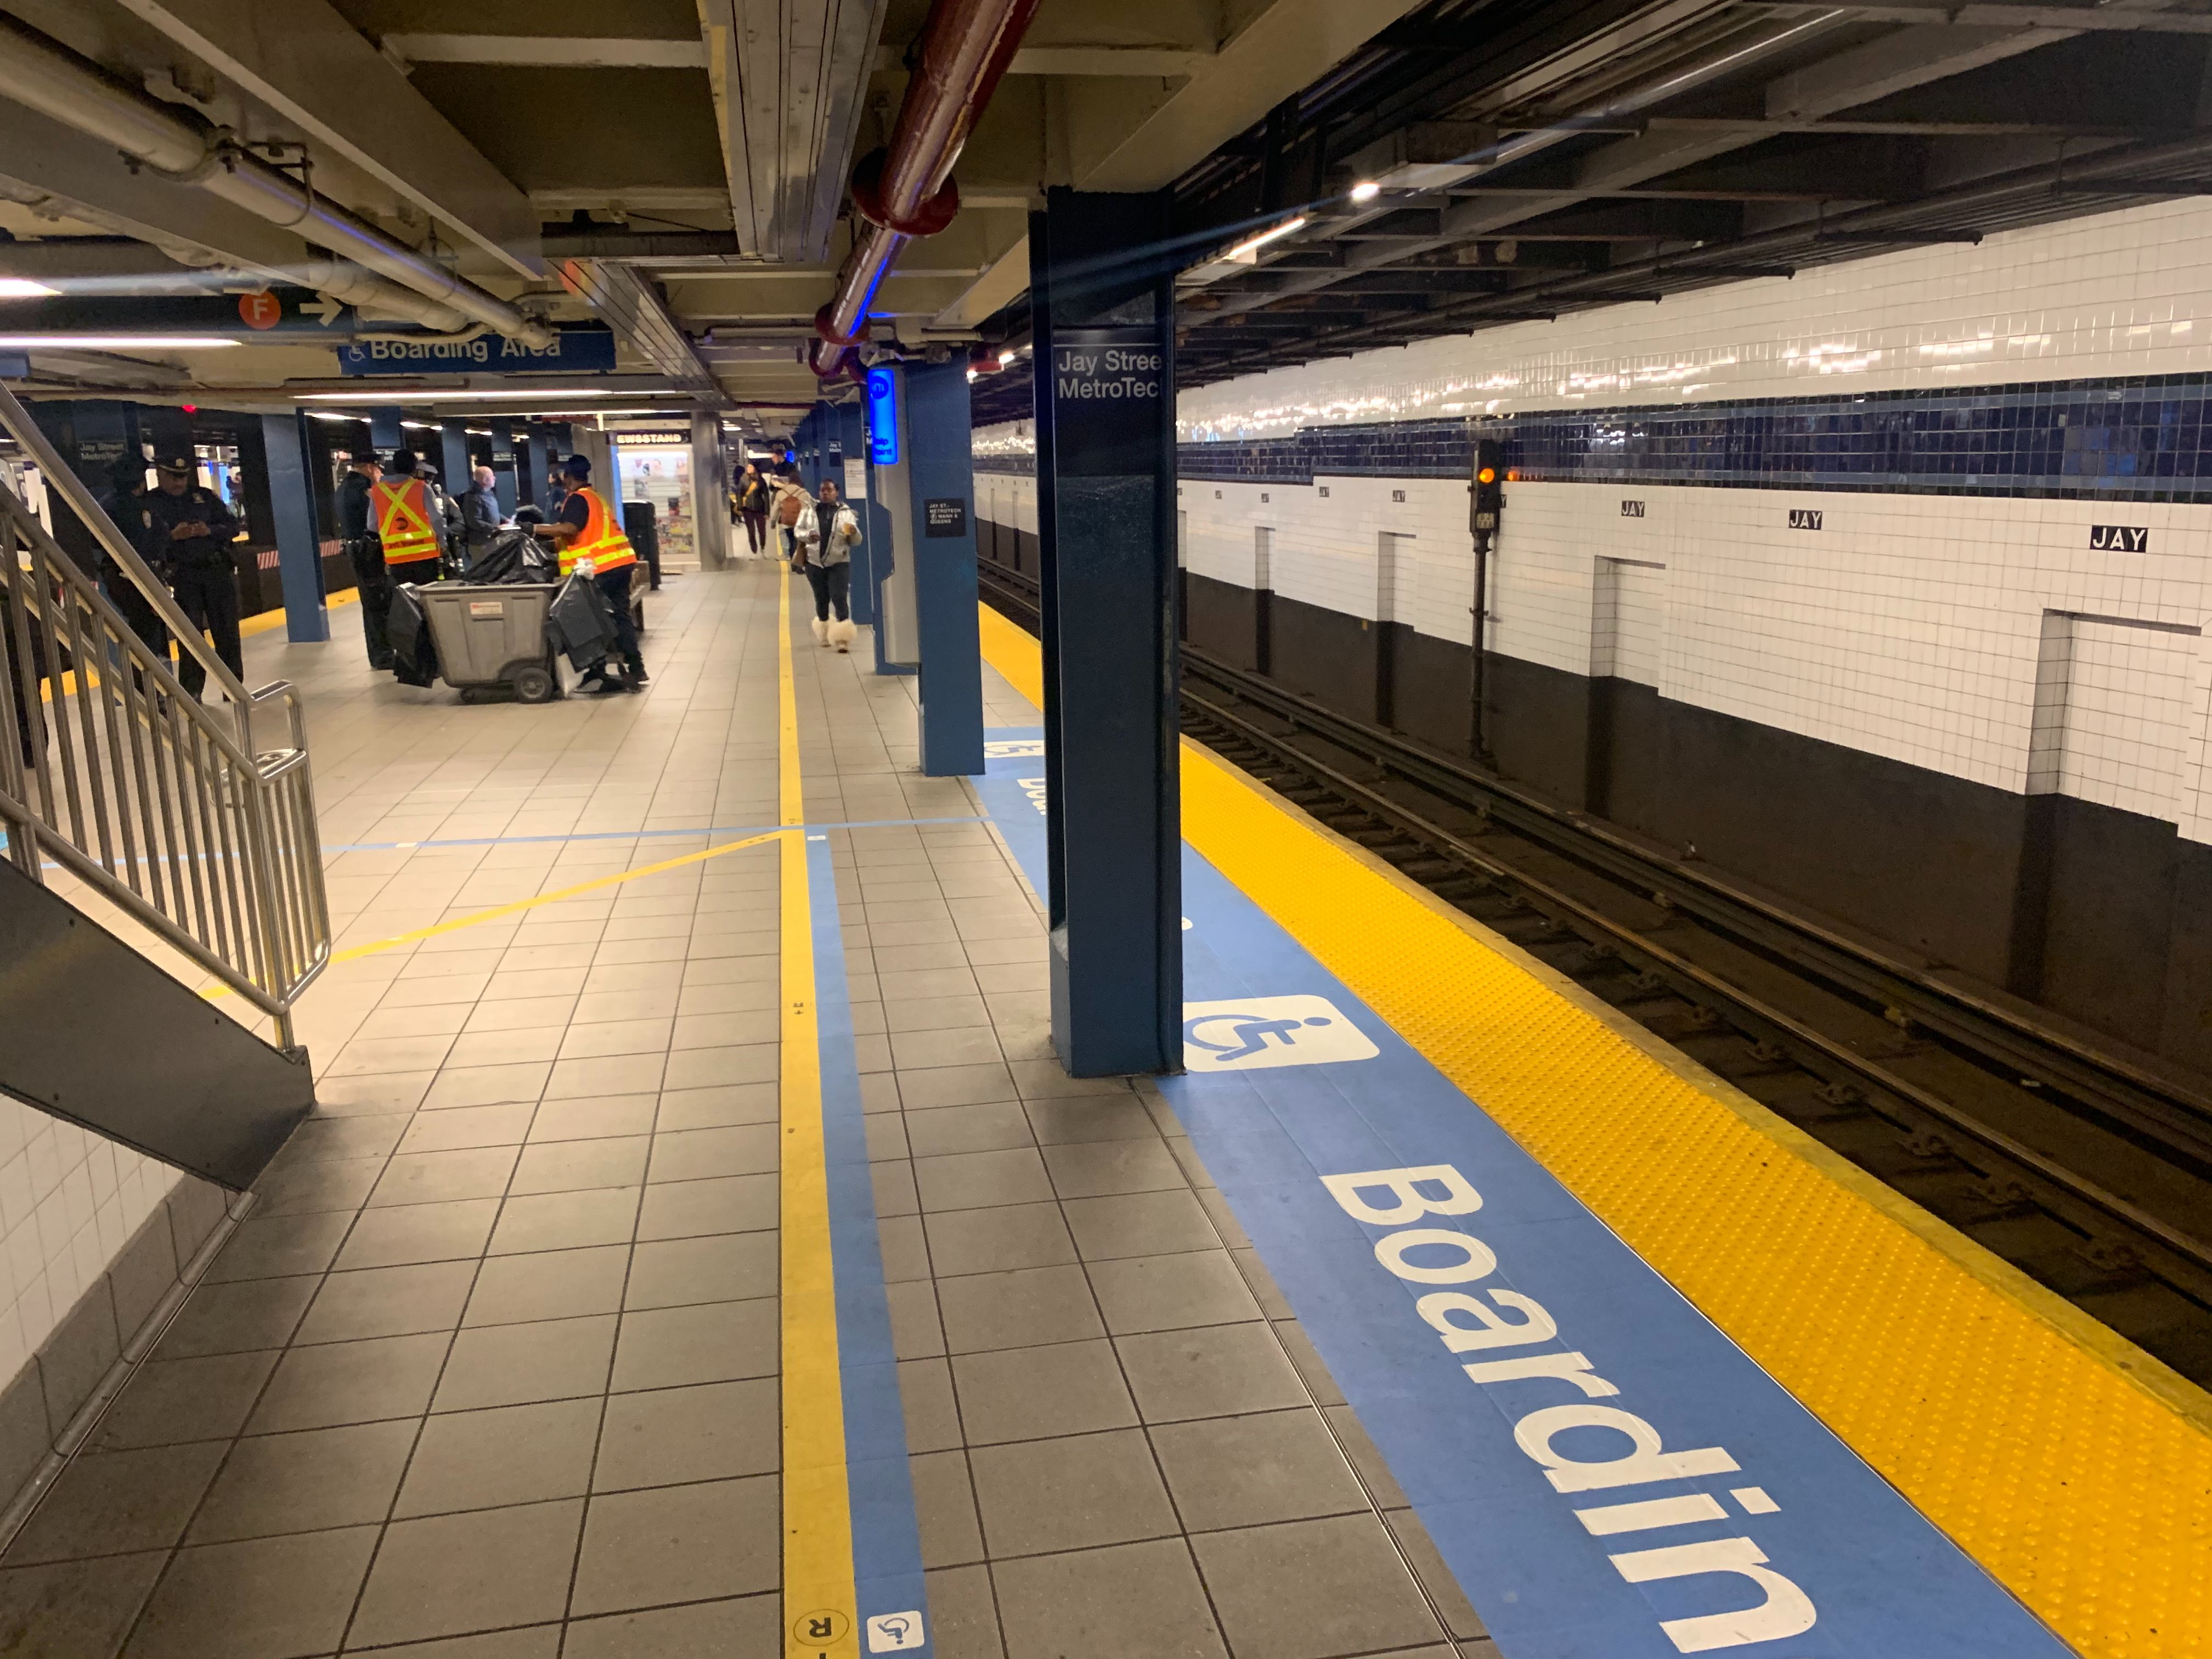 """Blue signage on the floor of the Jay Street-Metro Tech station states, """"Boarding"""" beside yellow tactile guides designed to help visually impaired passengers onto trains at the edge of the subway platform."""